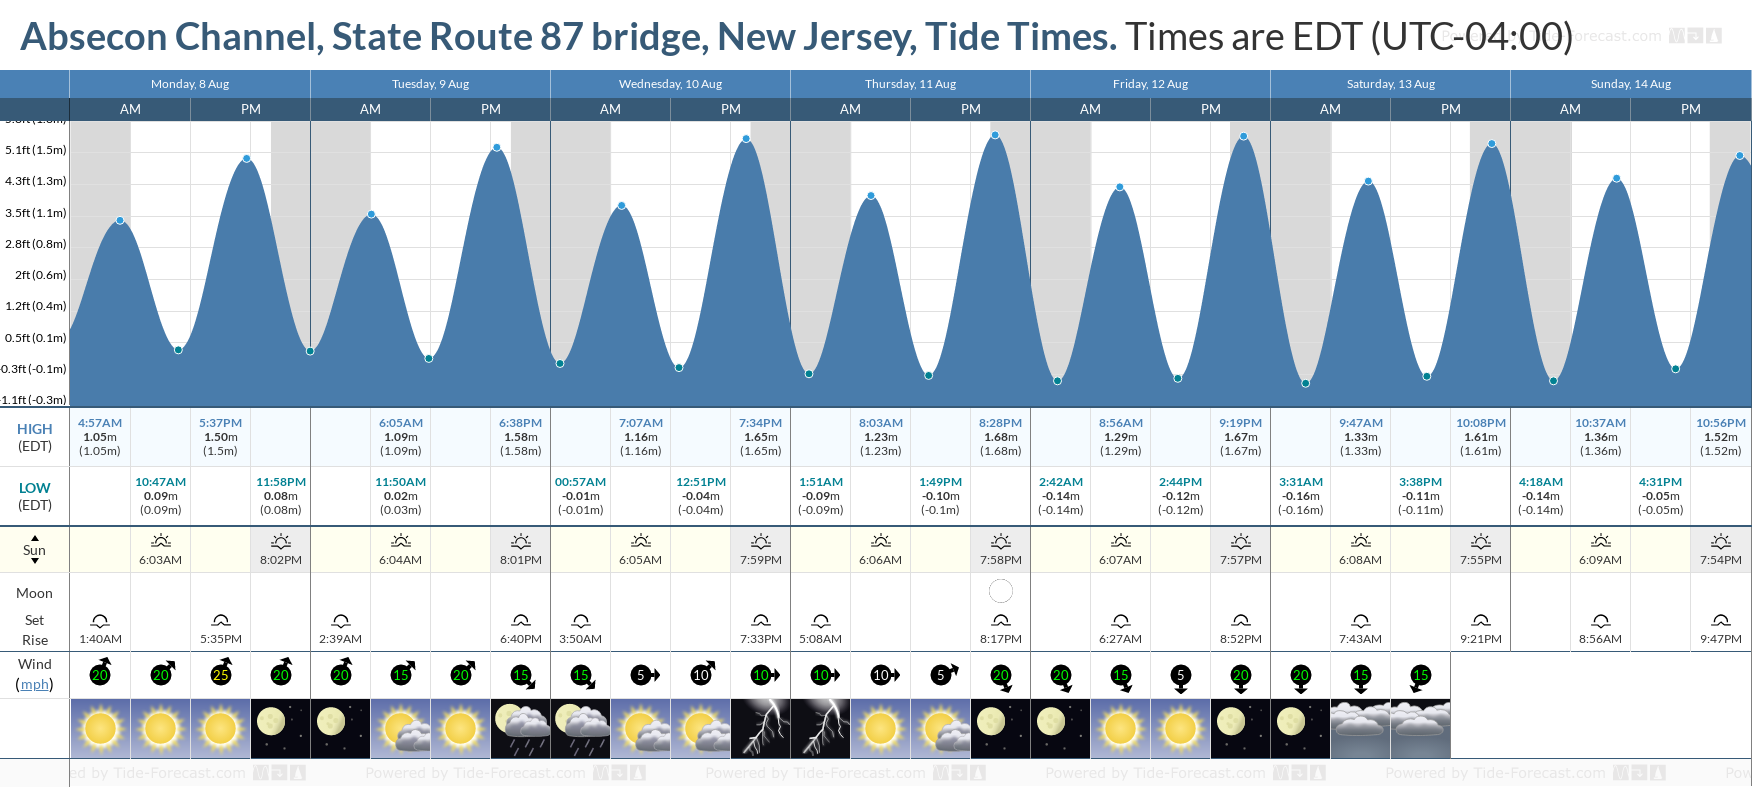 Absecon Channel, State Route 87 bridge, New Jersey Tide Chart including high and low tide tide times for the next 7 days